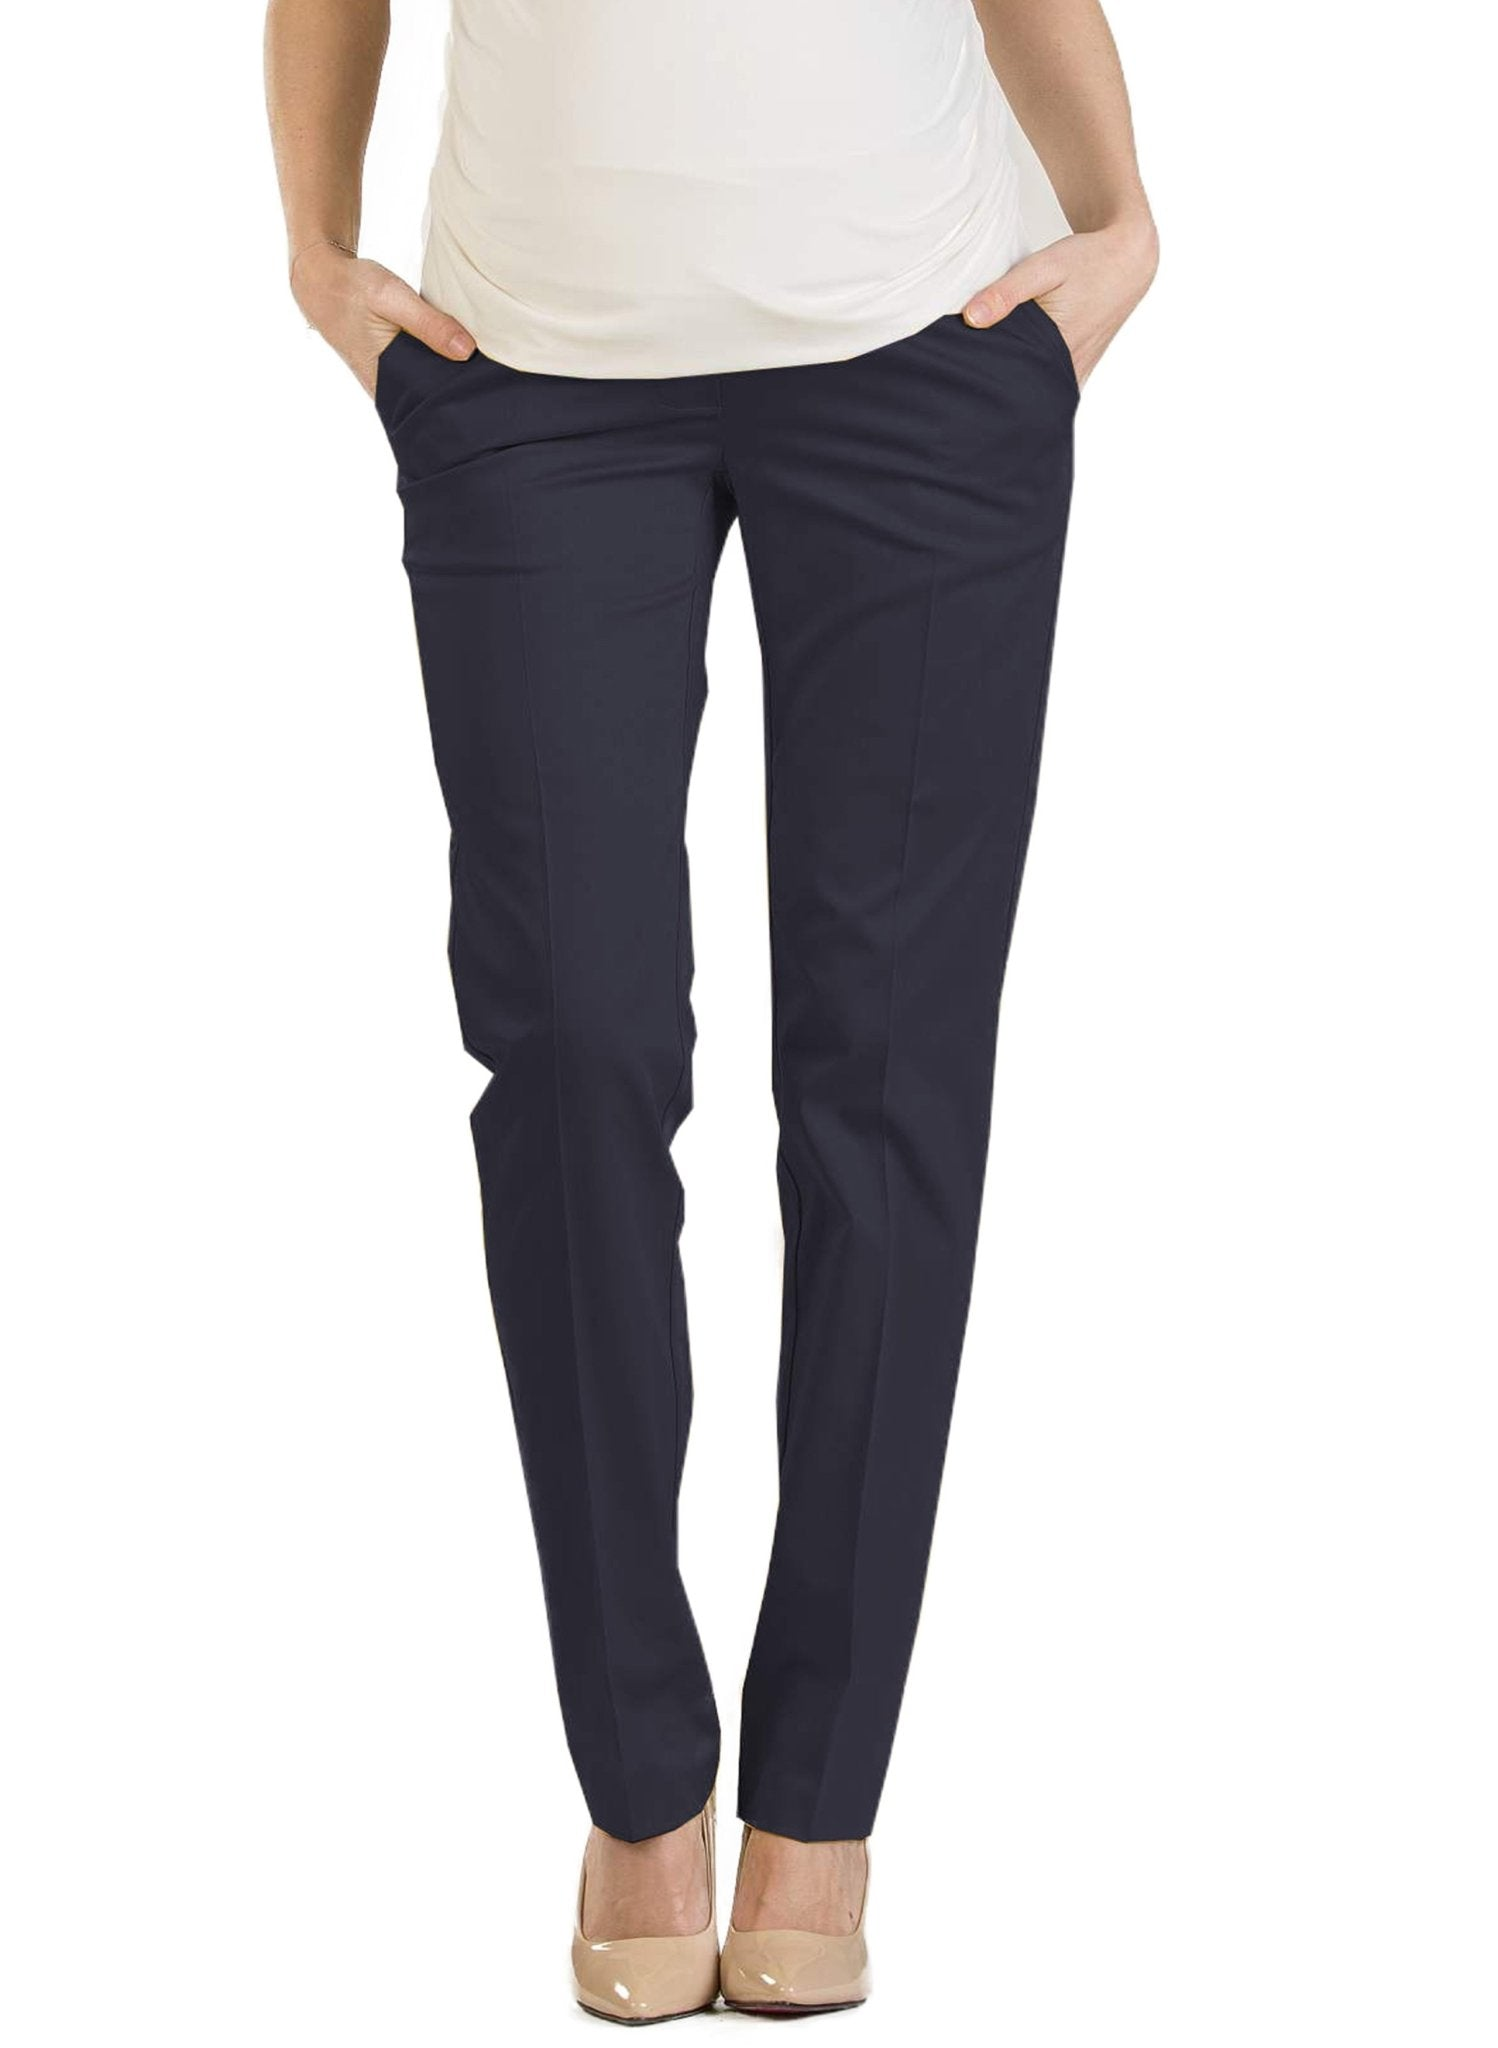 Straight Leg Maternity Trouser - Navy - Mums and Bumps